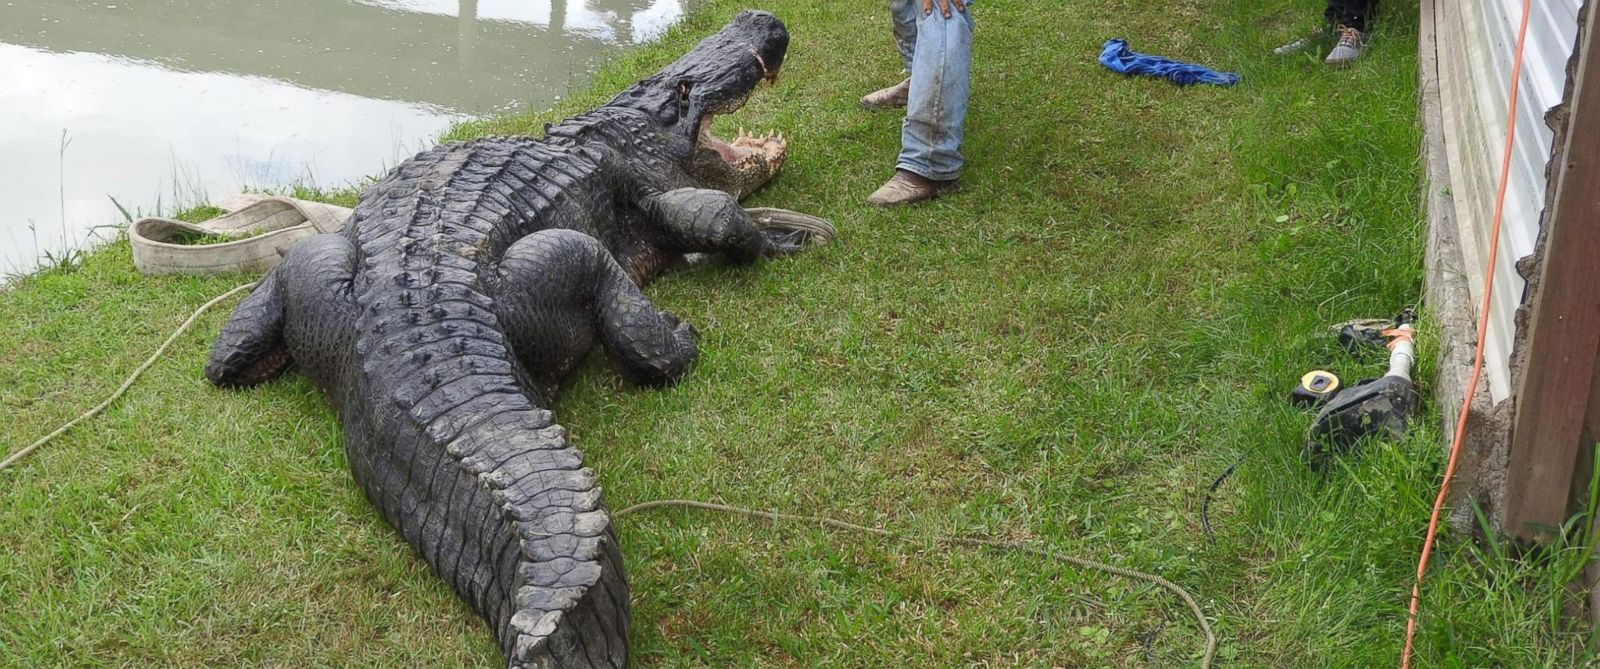 this alligator is the largest ever caught alive in texas wildlife